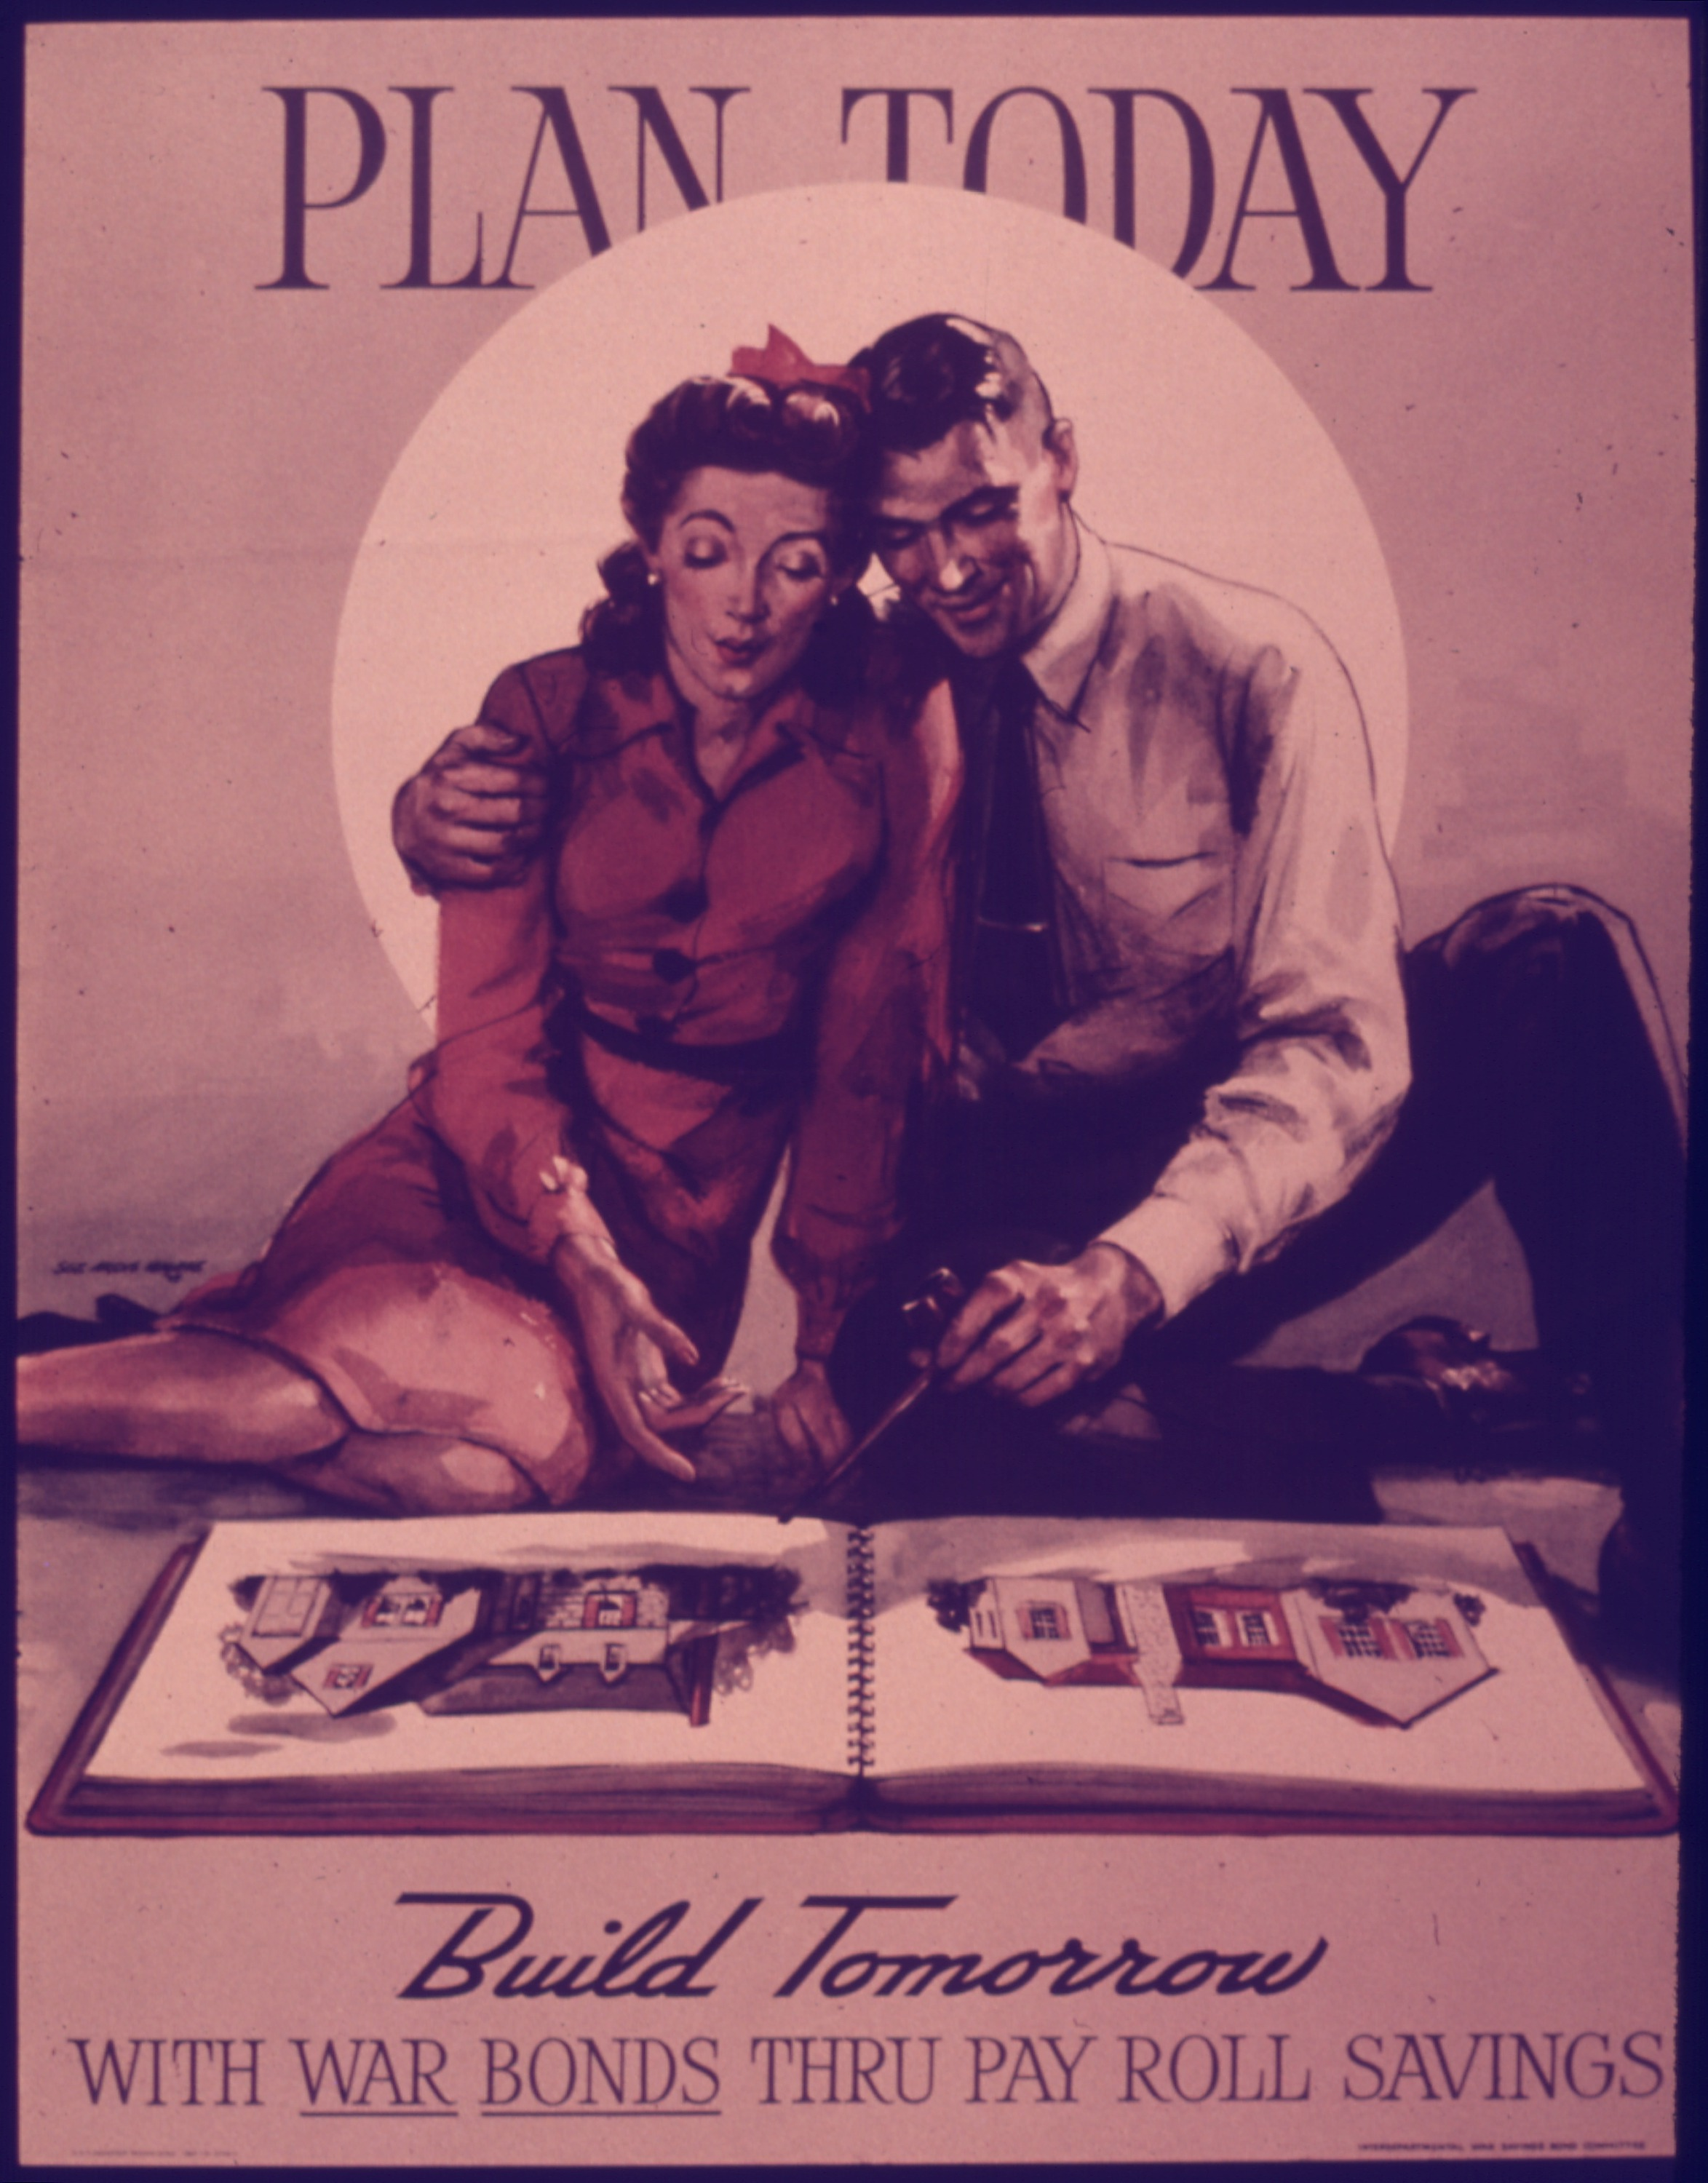 World War II Poster from the Office for Emergency Management